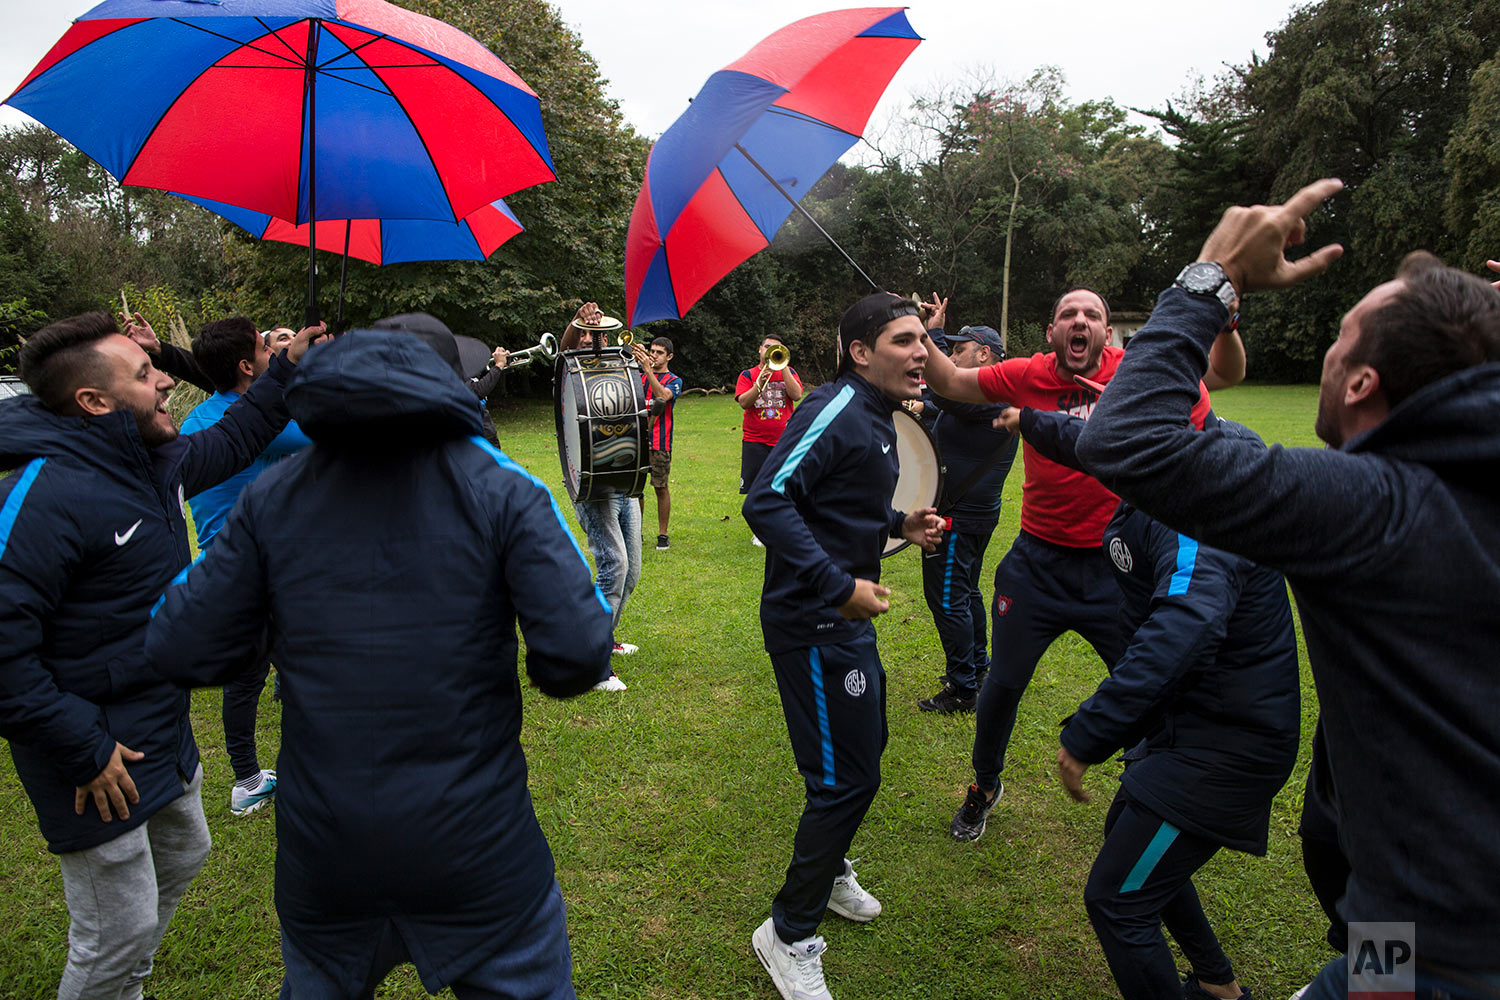 """In this May 1, 2018 photo, members of the """"School of Planks,"""" the musical fan club of San Lorenzo's soccer team, dance as they work on new songs for the fans of Argentina's national soccer team and their local team of San Lorenzo in Buenos Aires, Argentina. (AP Photo/Rodrigo Abd)"""